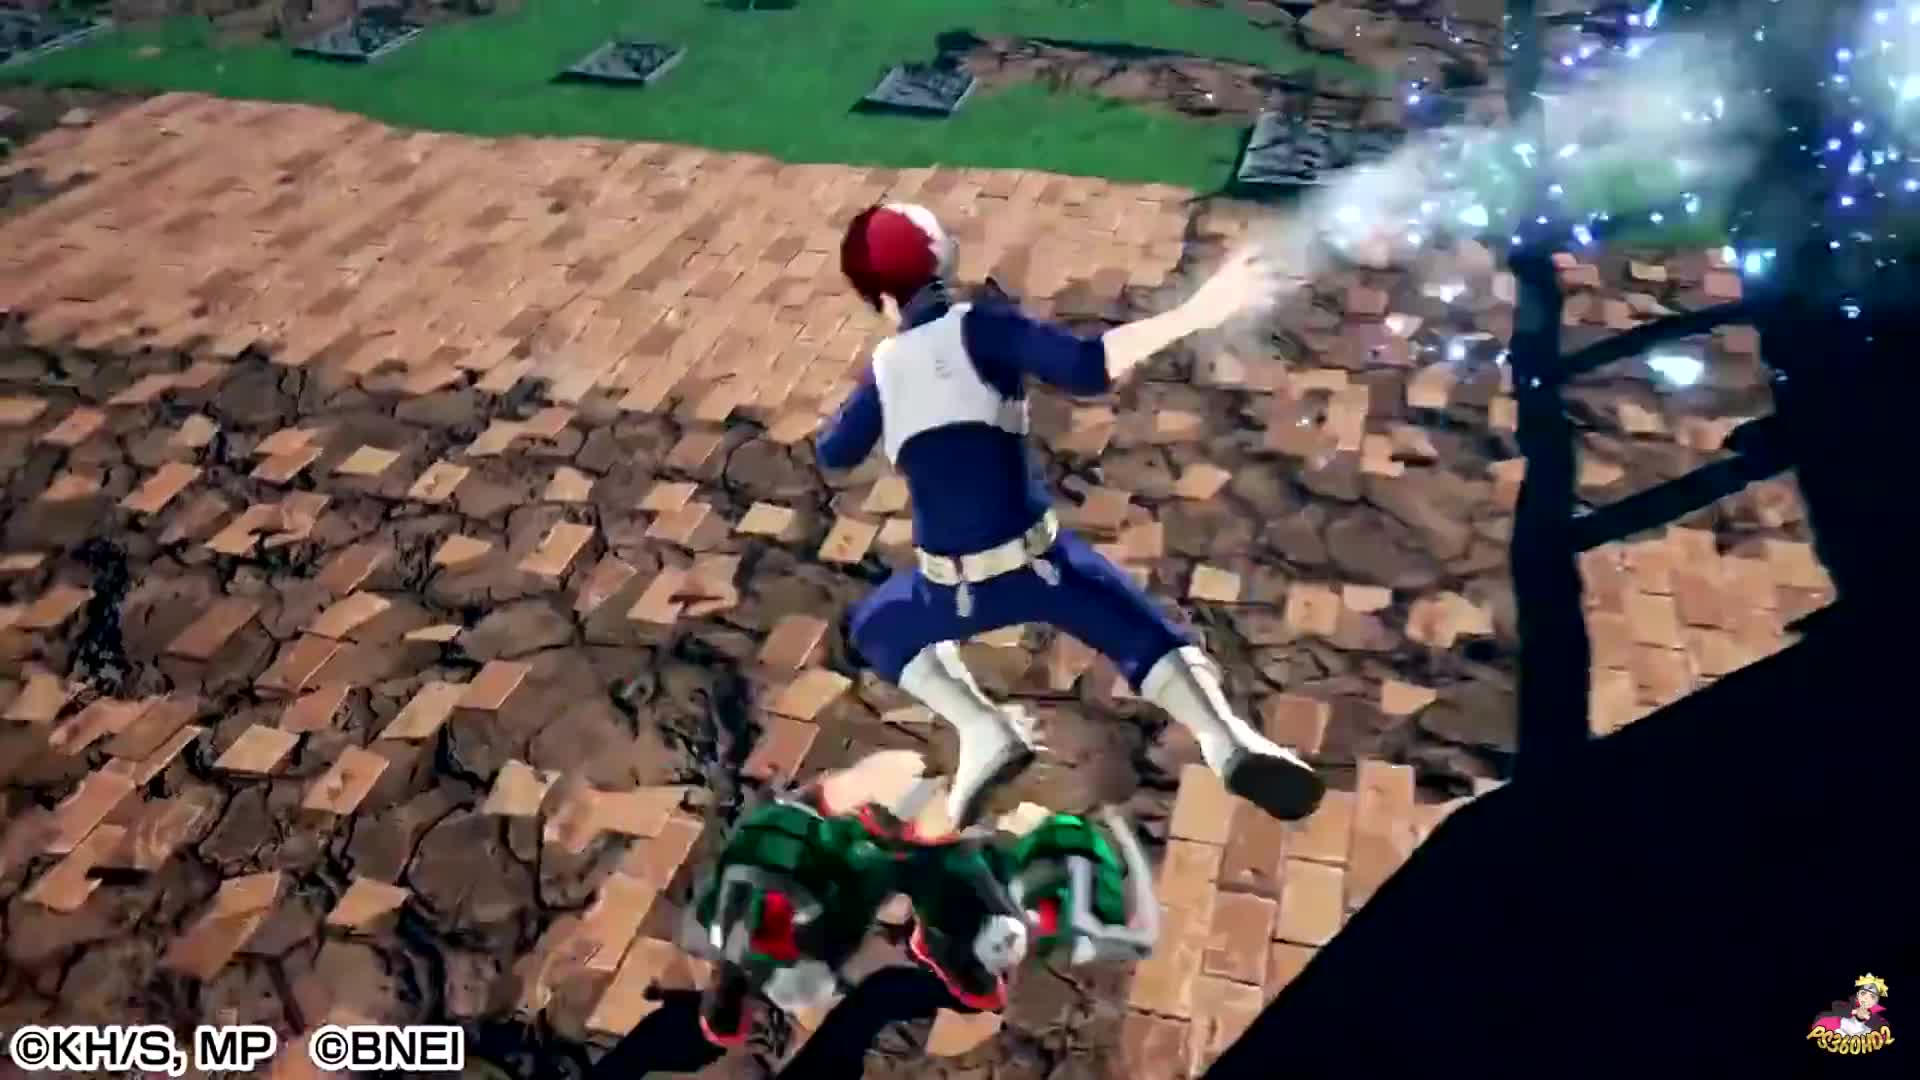 my hero academia one s justice gameplay gifs search search share